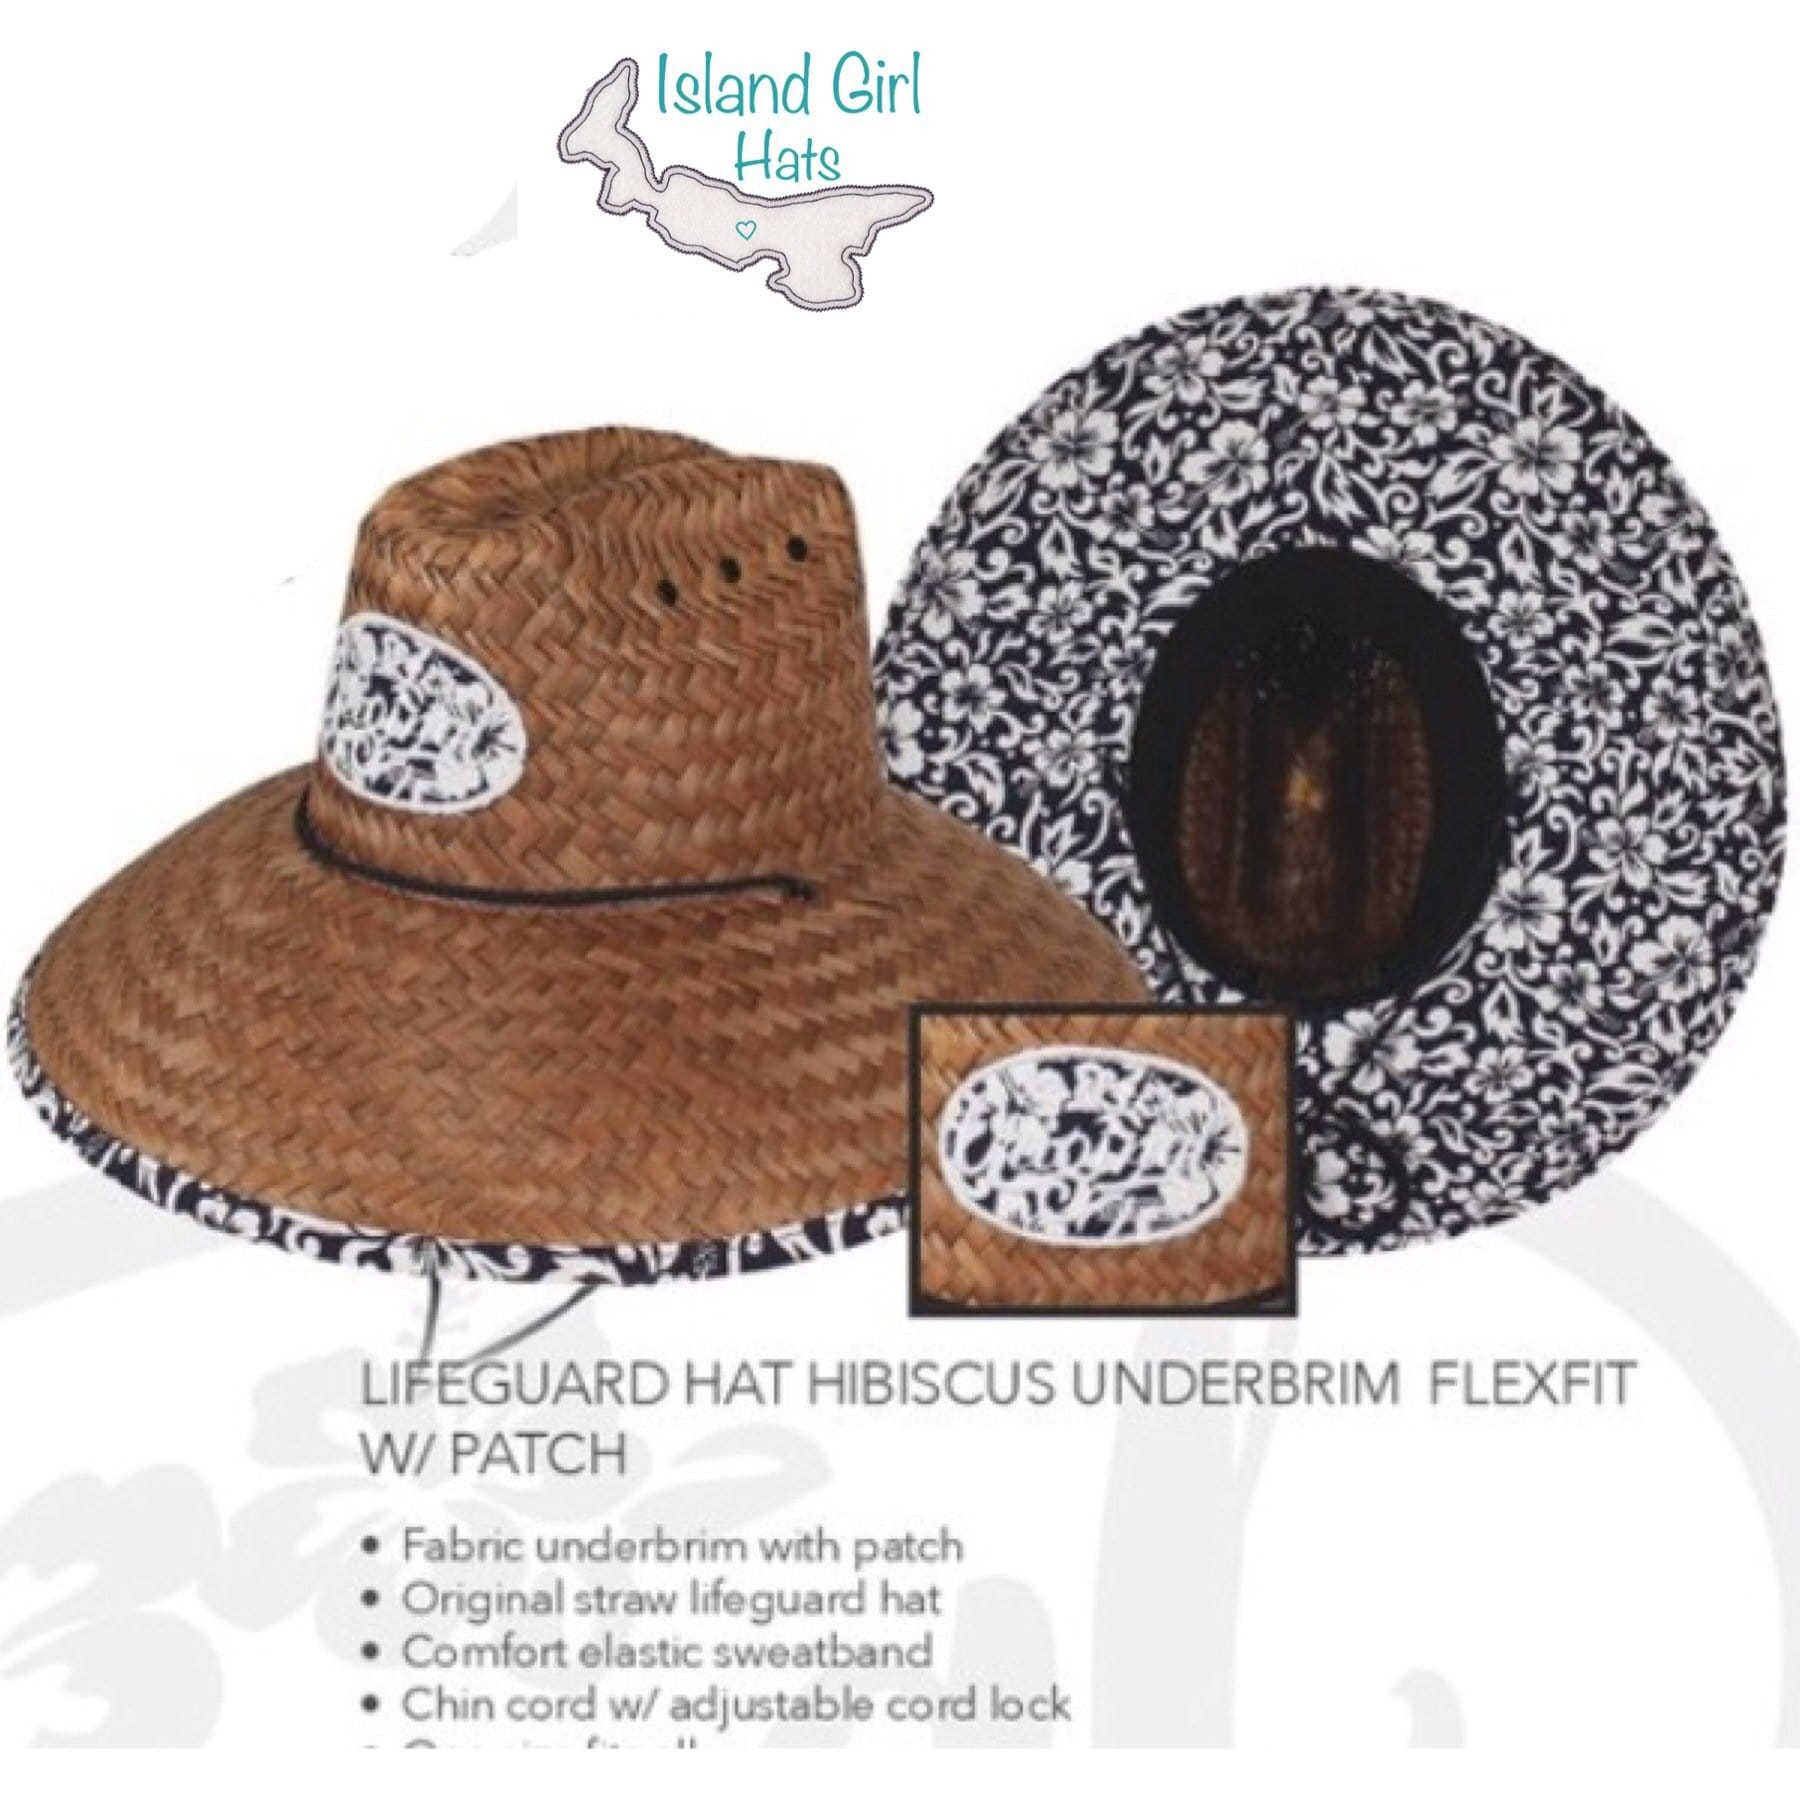 Island Girl Sun Hat One Size / Navy Hibiscus Island Girl Hats / Navy Hibiscus equestrian team apparel online tack store mobile tack store custom farm apparel custom show stable clothing equestrian lifestyle horse show clothing riding clothes horses equestrian tack store